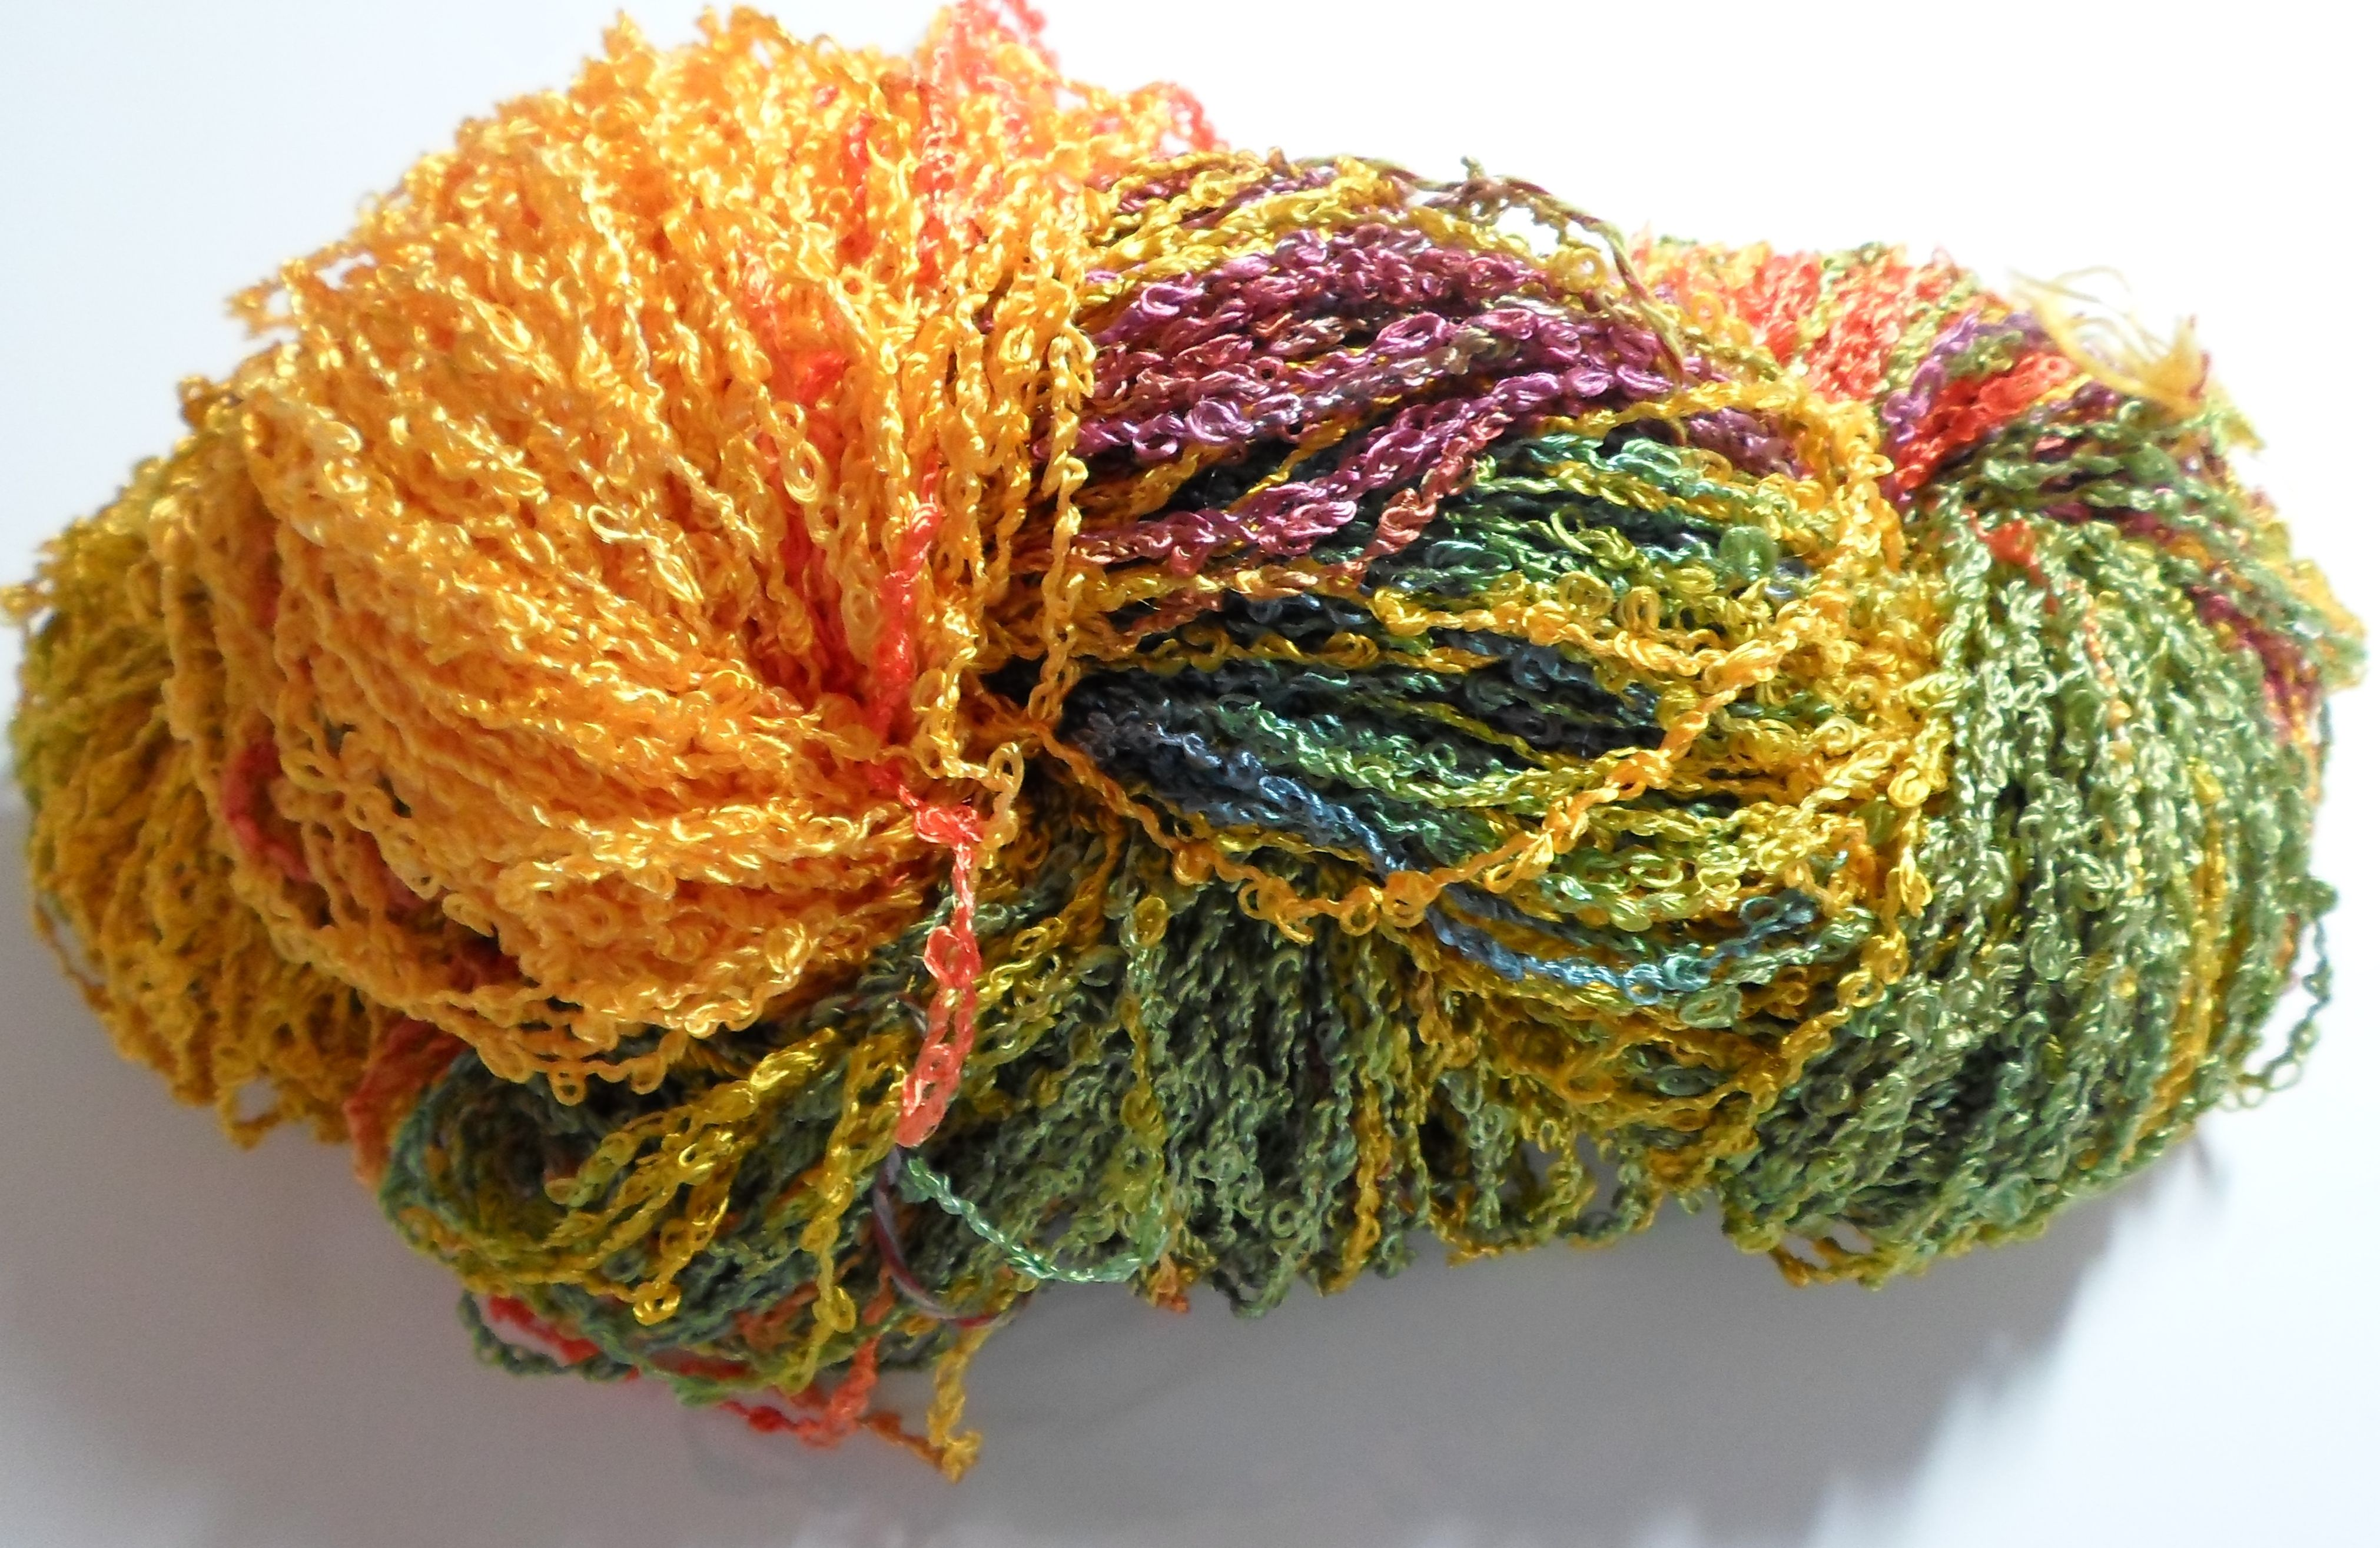 Luxury yarns from a fab collection  Hand dye - beautiful colors - great prices  VINTAGE also available, 5th Ave Fibers